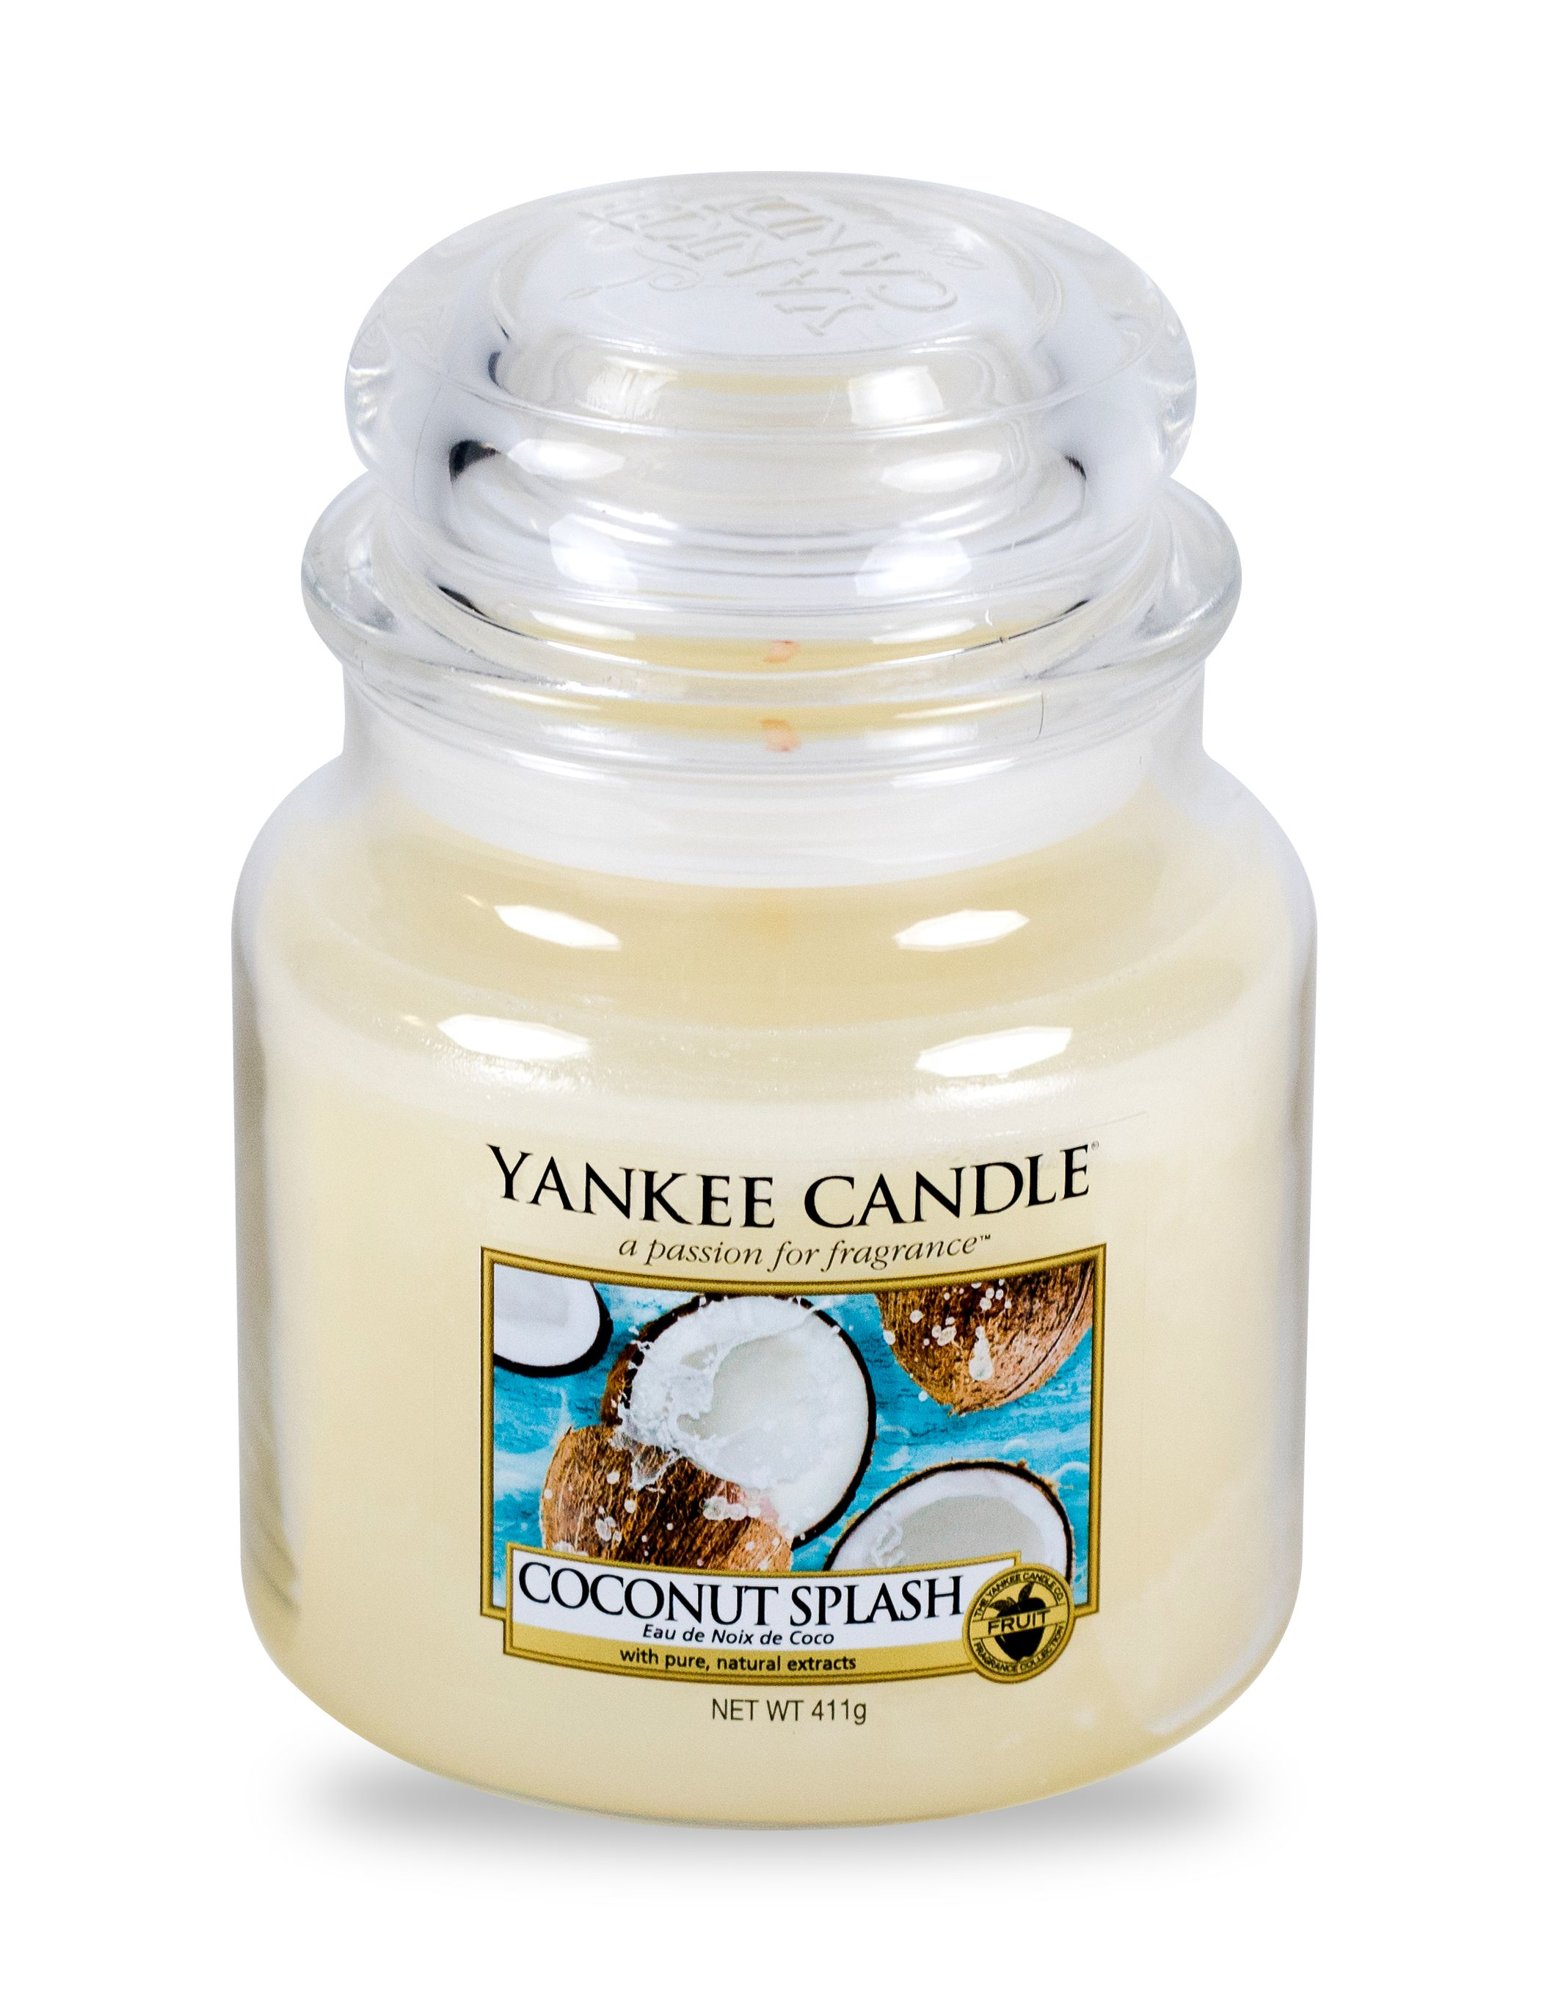 Yankee Candle Coconut Splash Scented Candle 411ml